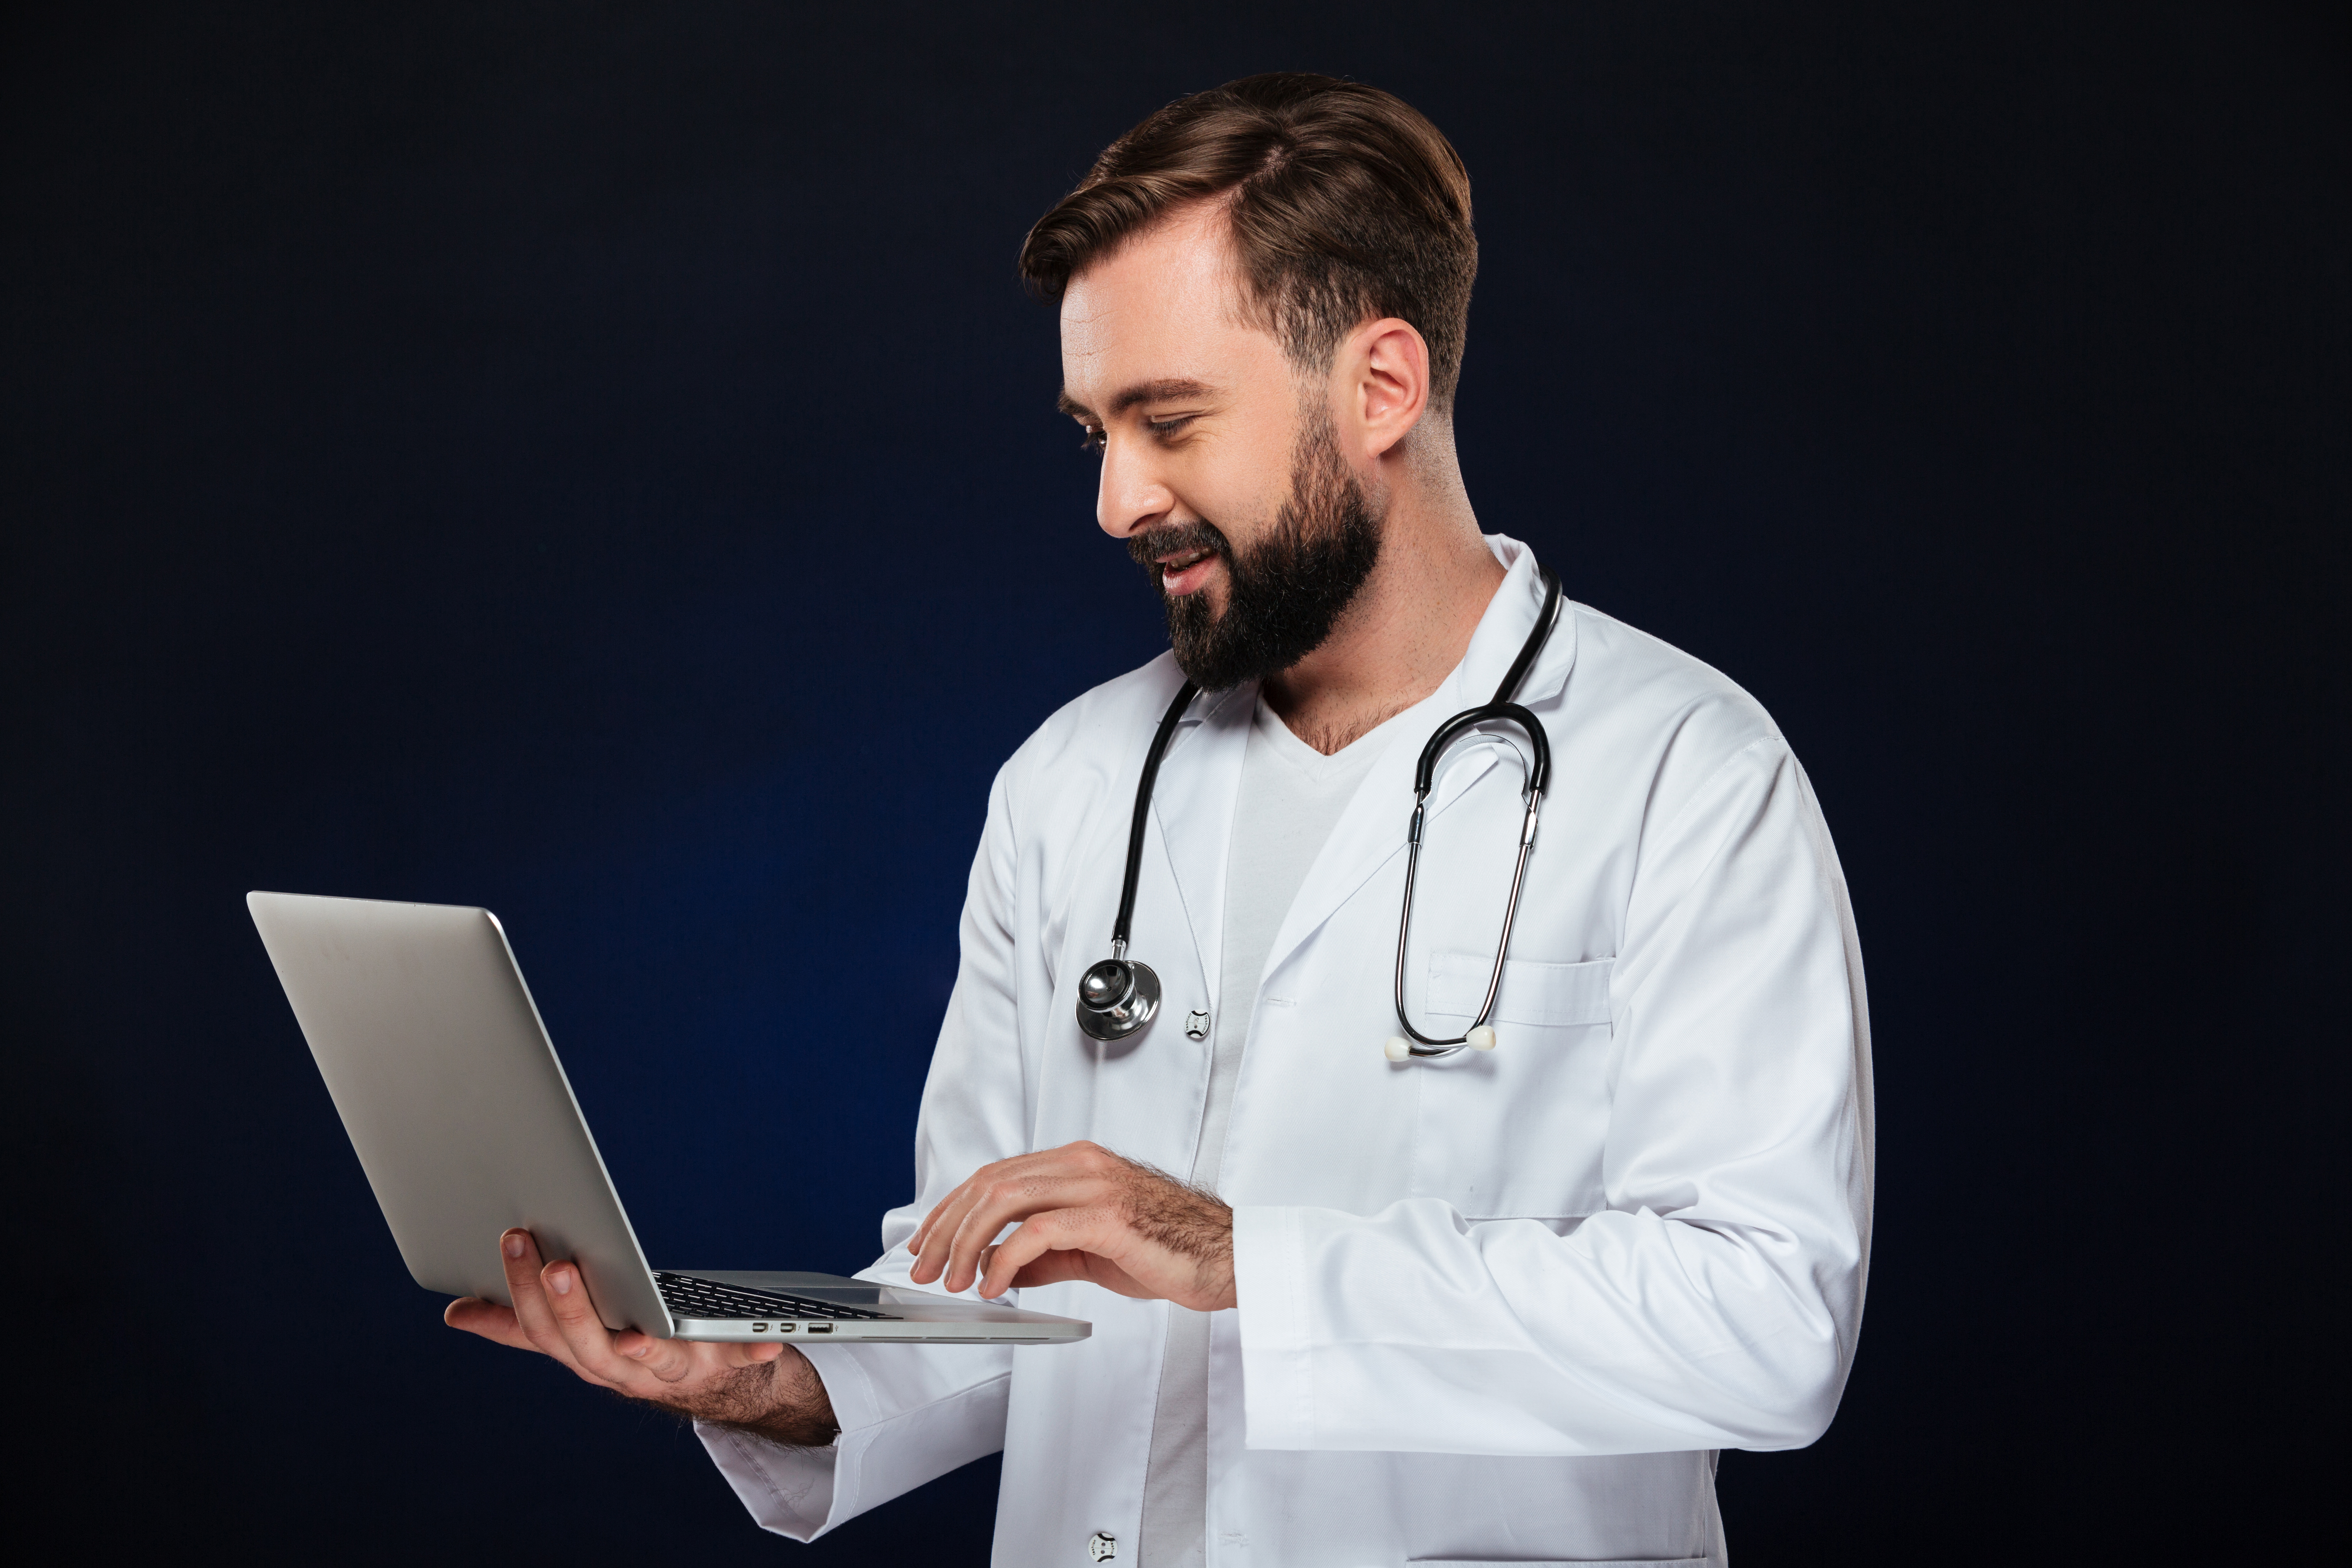 doctor in uniform holding laptop for pxtrack patient tracking system initial setup